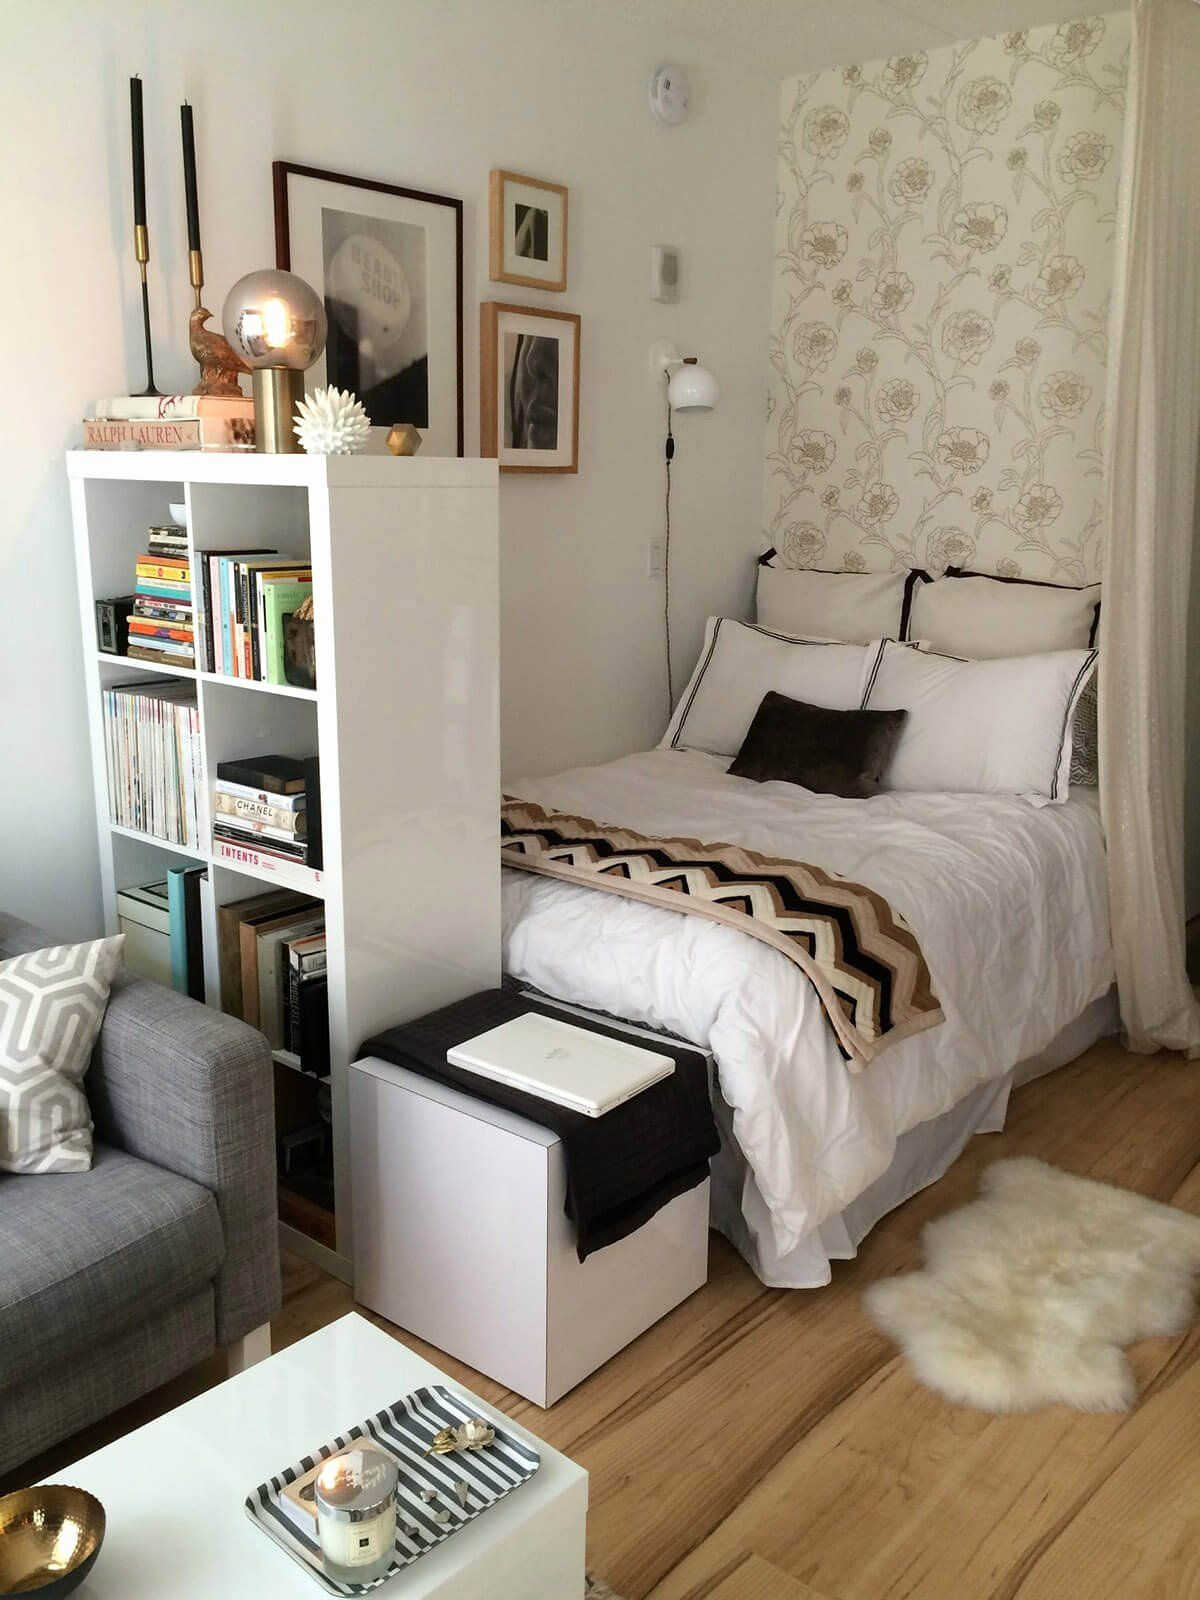 Beautiful Bedroom Ideas For Small Rooms Lovely 37 Best Small Bedroom Ideas And Designs For 2020 In 2020 Small Bedroom Decor Small Room Design Small Bedroom